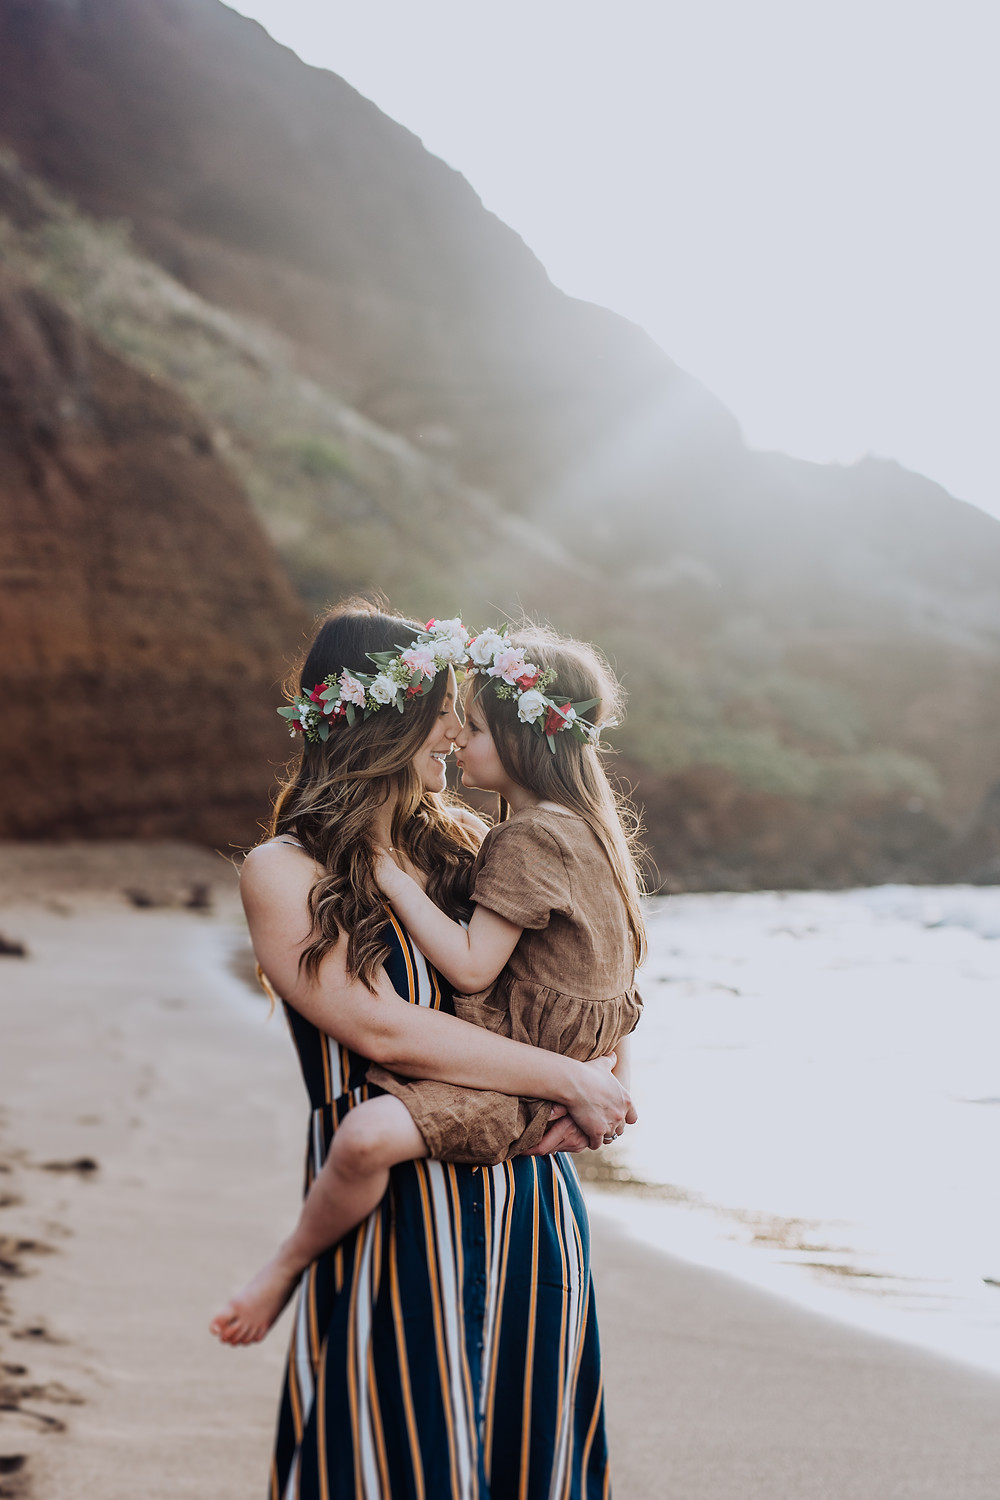 A mother holds her daughter as they kiss each other on the beach.